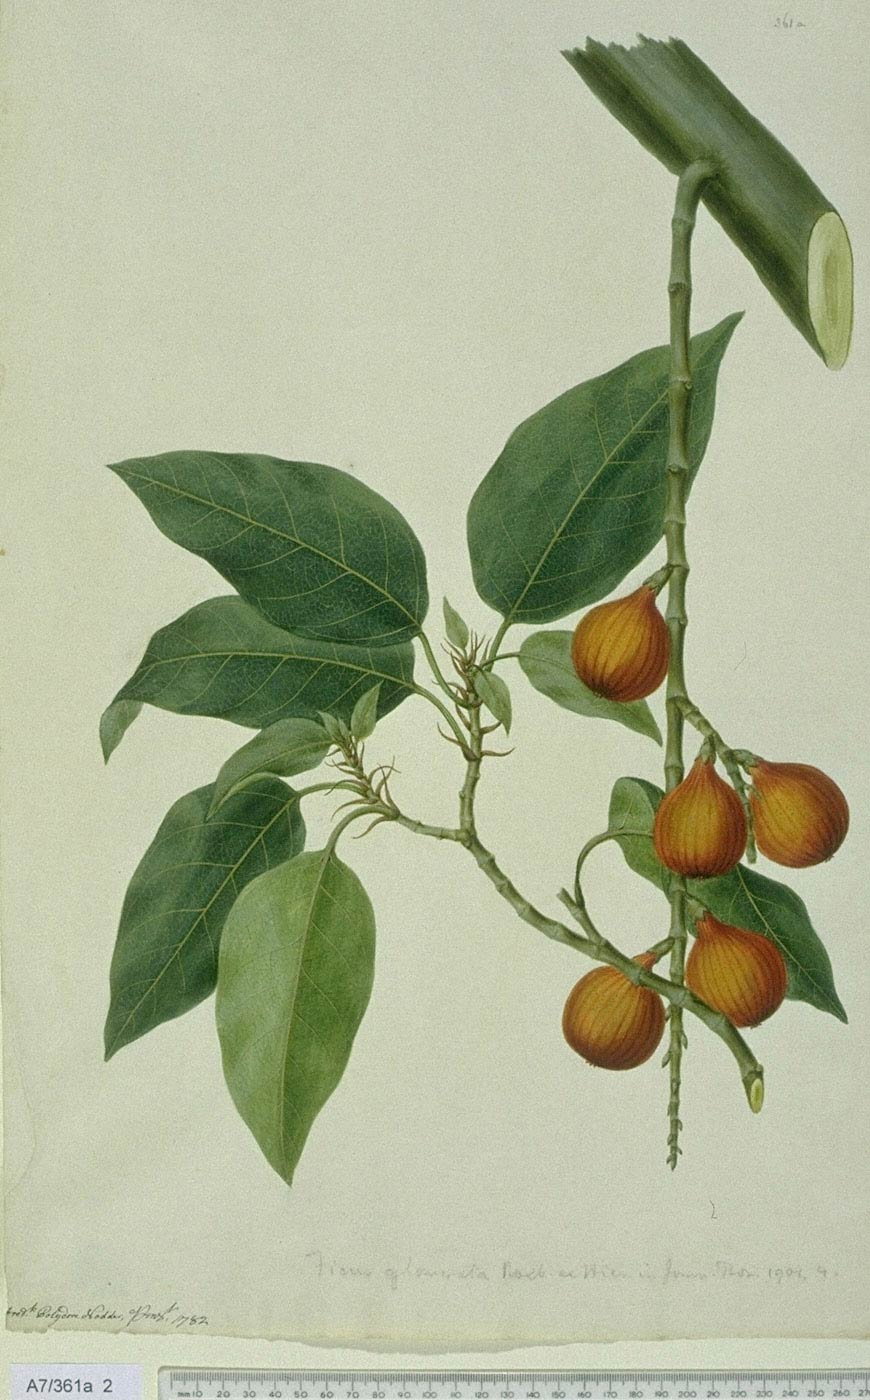 Ficus Racemosa - approx. actual size - this image digitally watermarked and copyright NHM